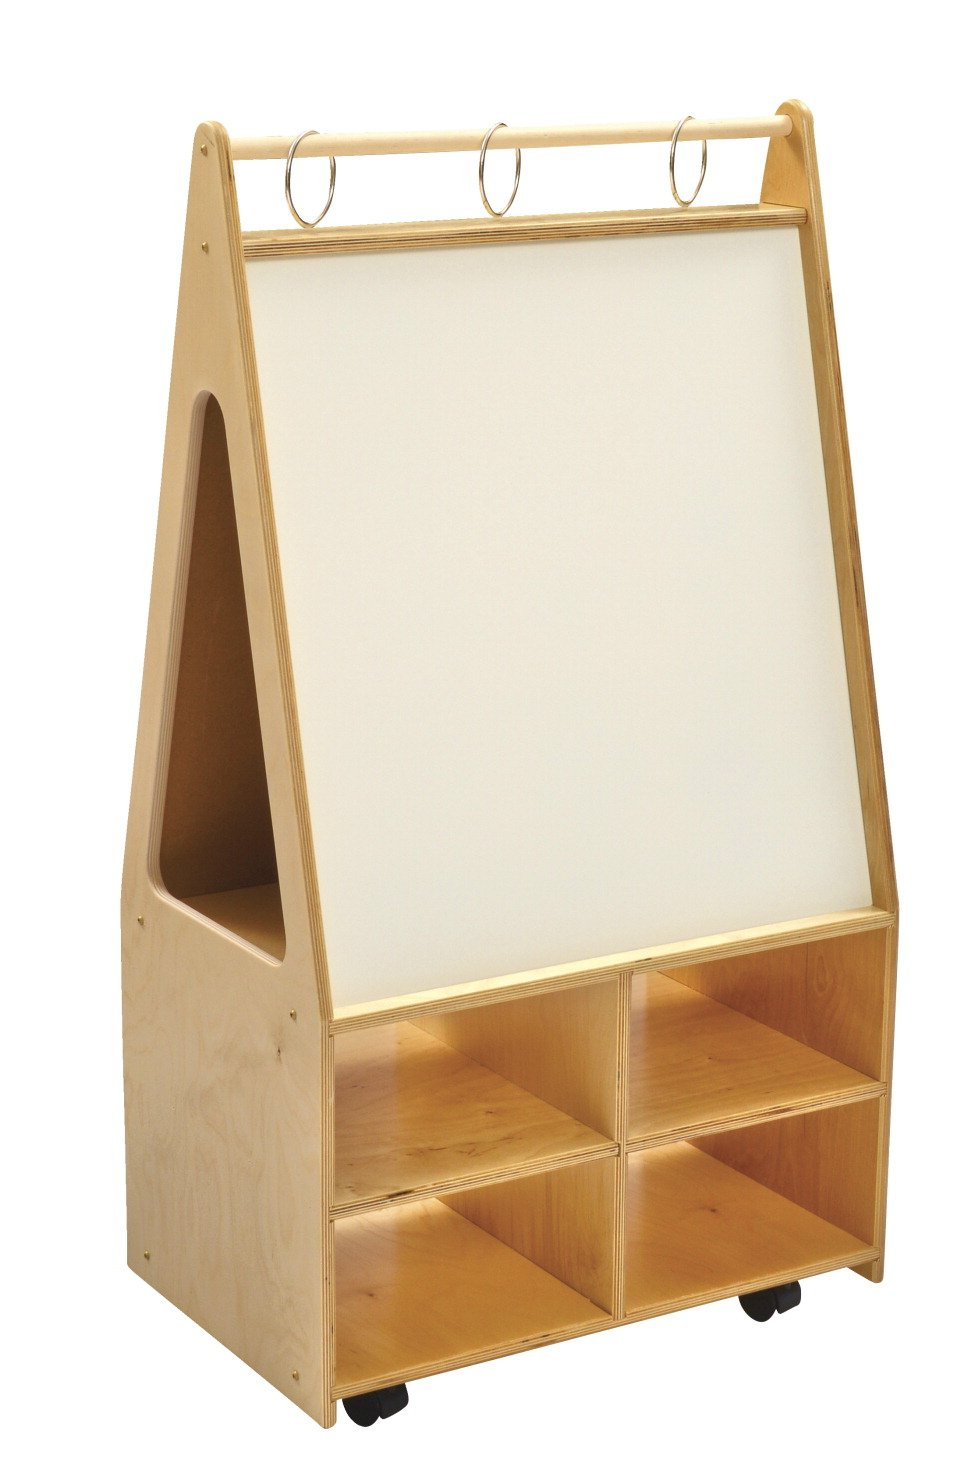 Childcraft 298694 Mobile Magnetic Dry-Erase Easel, Double-Sided, 24-3/4'' x 16'' x 46'', Natural Wood Tone/White